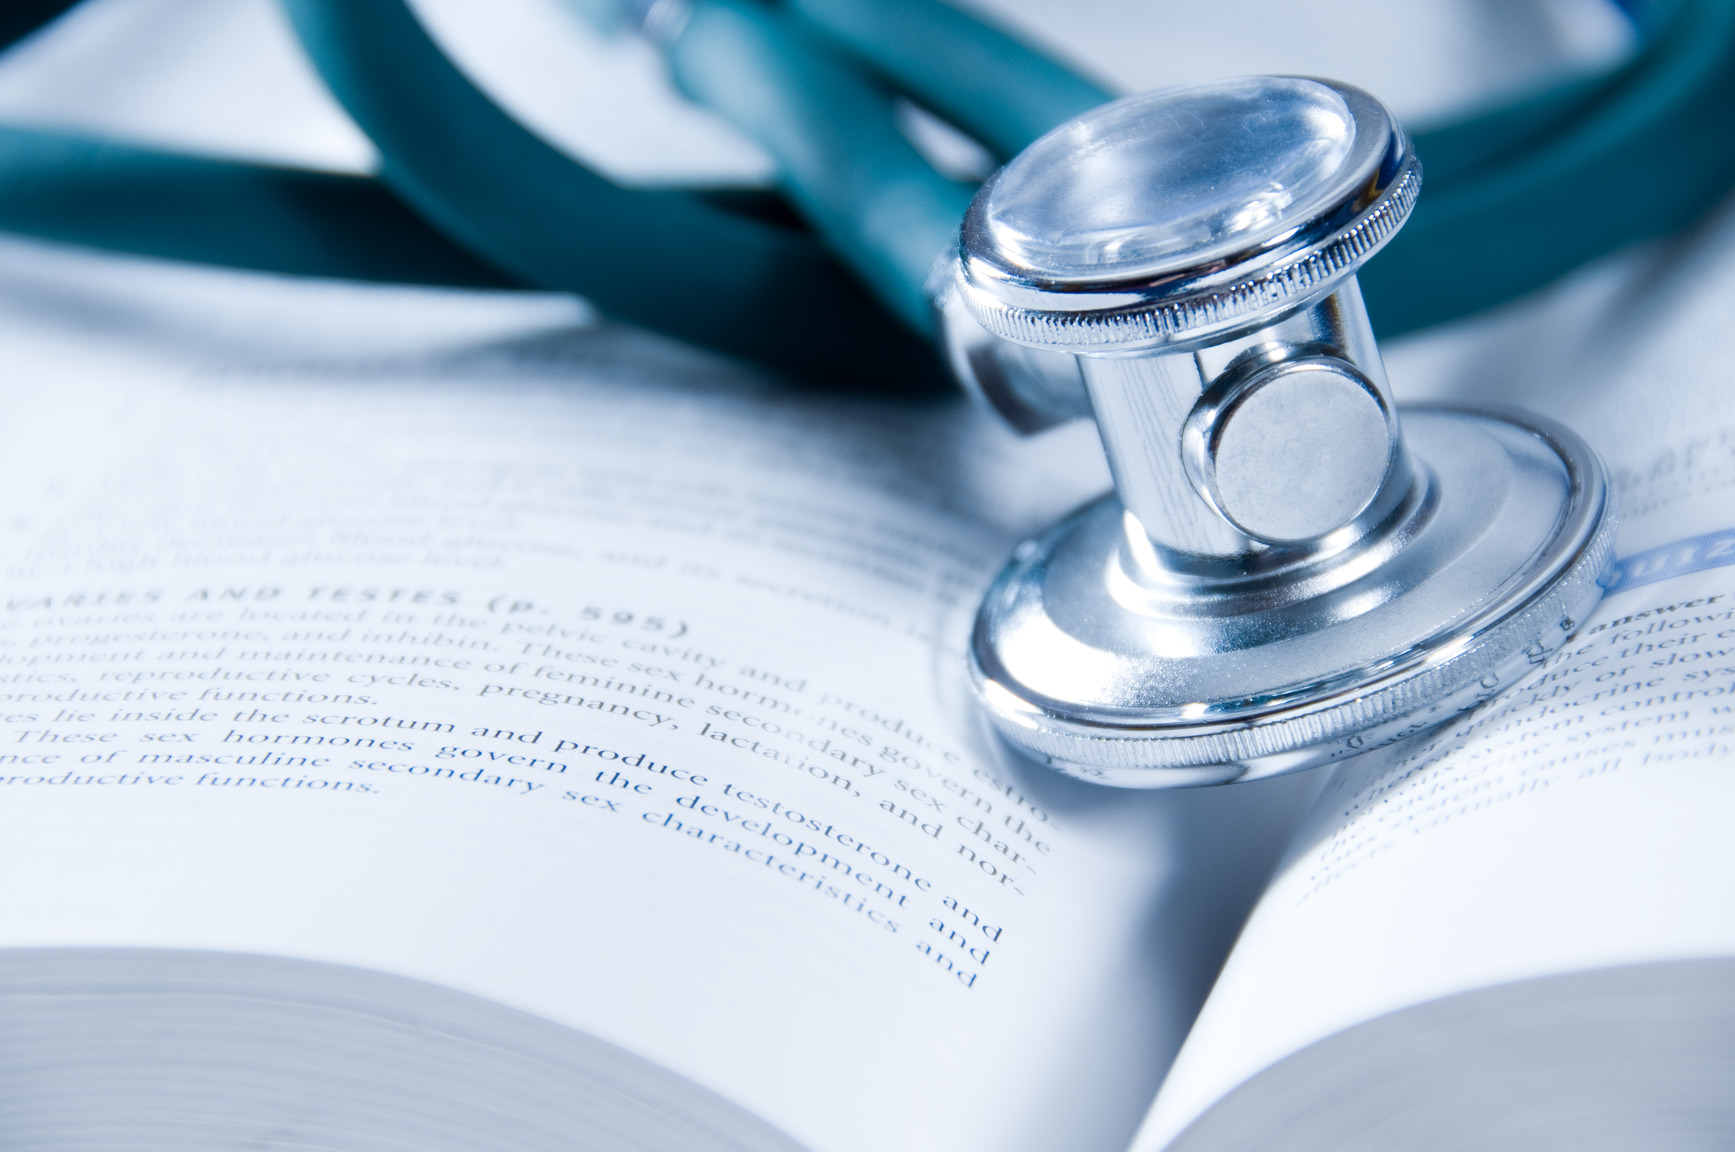 clinical postdoctoral research officer initiative to develop